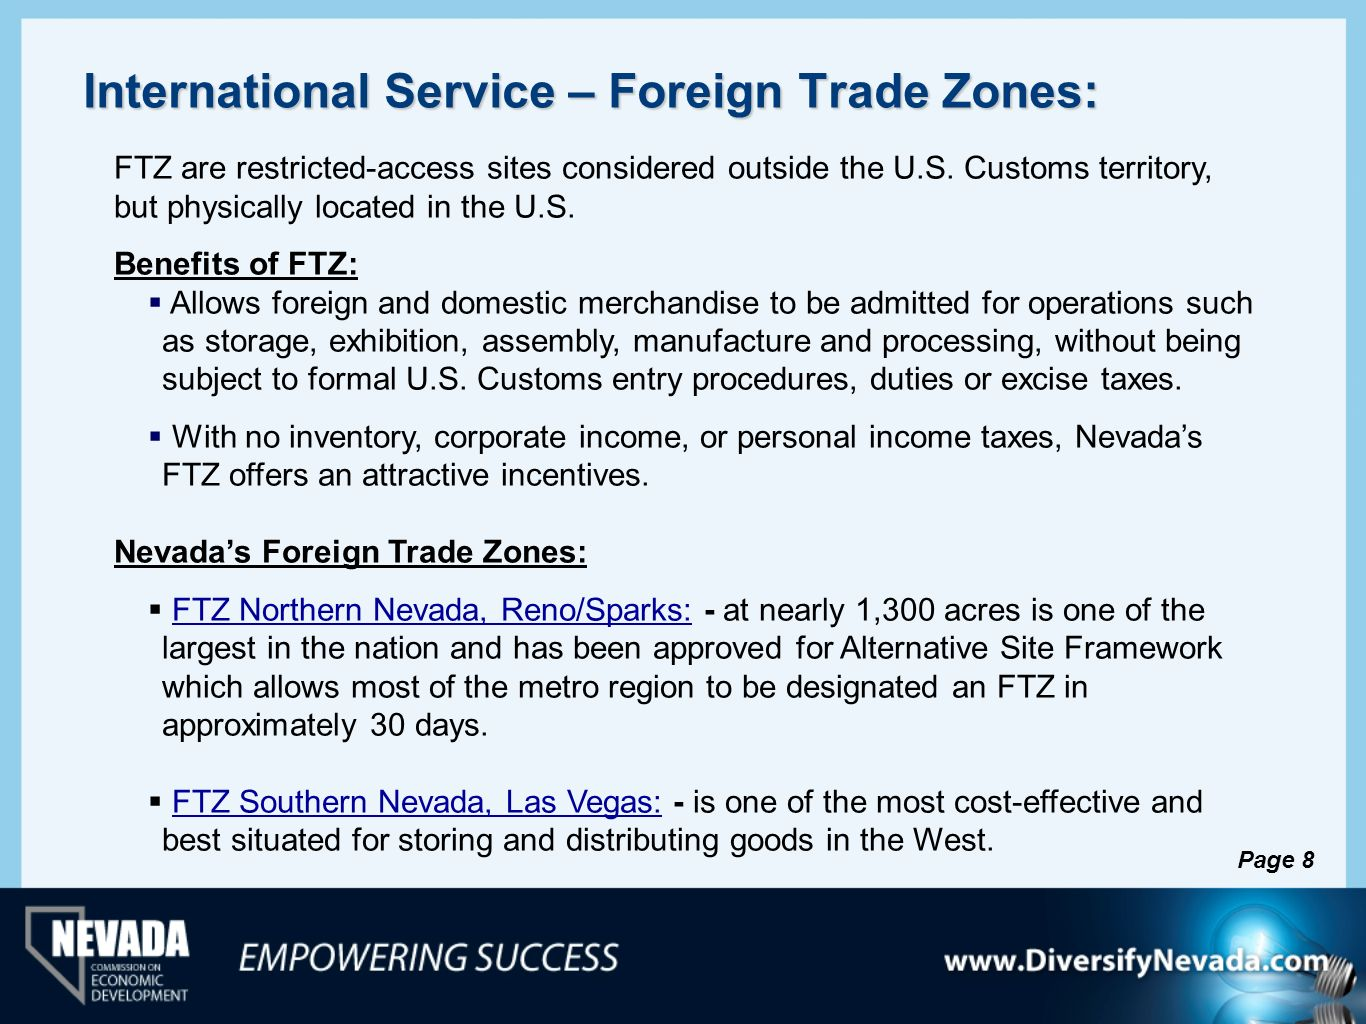 International Service – Foreign Trade Zones: